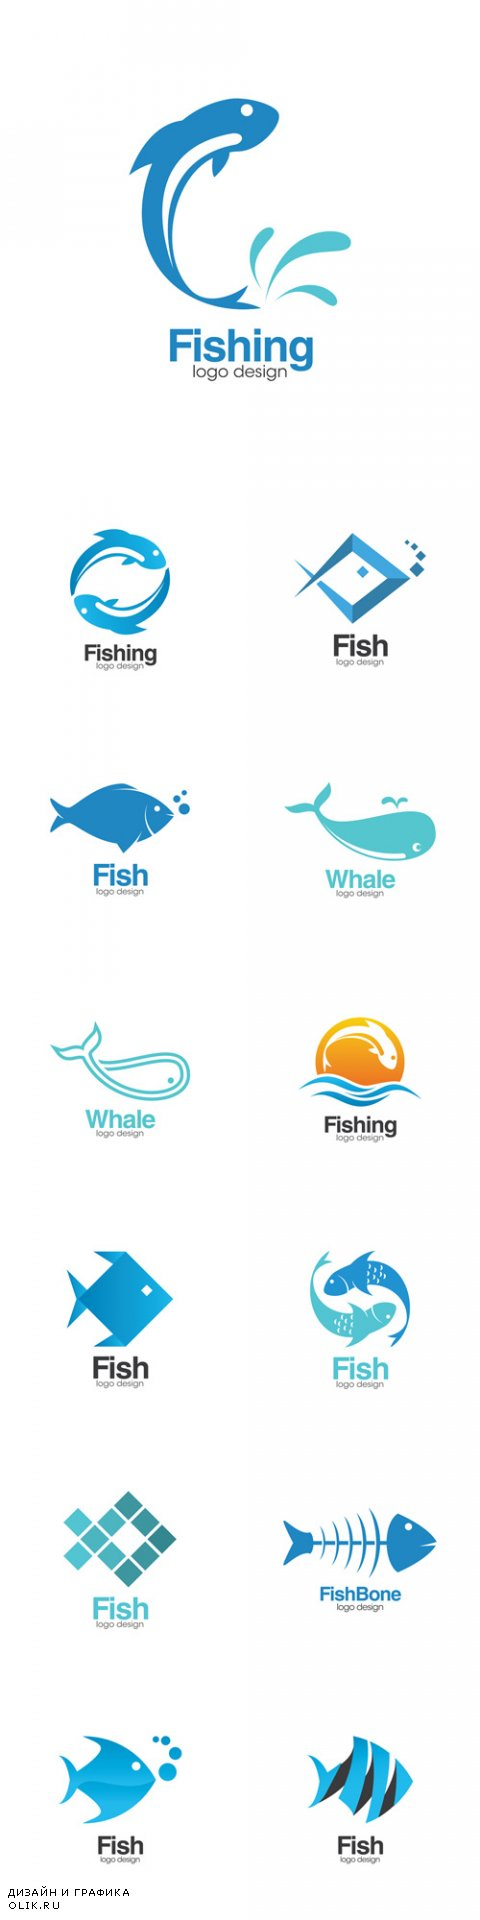 Vector Fish Creative Concept Logo Design Template